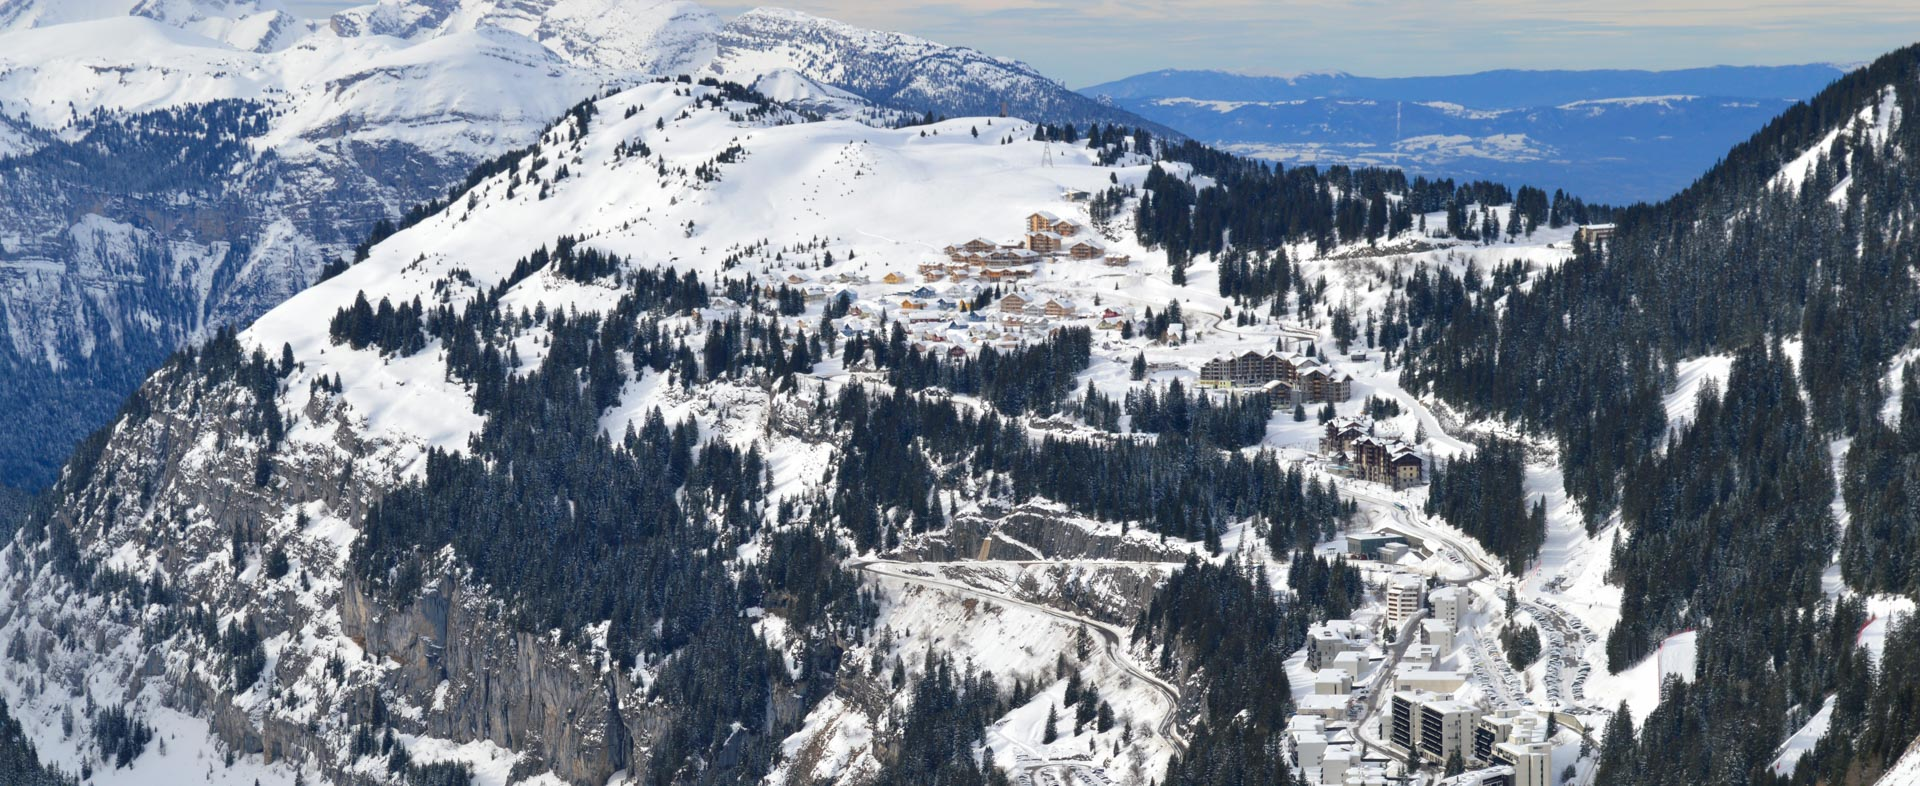 The village of Flaine sits nestled in the mountain side, above evergreen trees and below the ski slopes